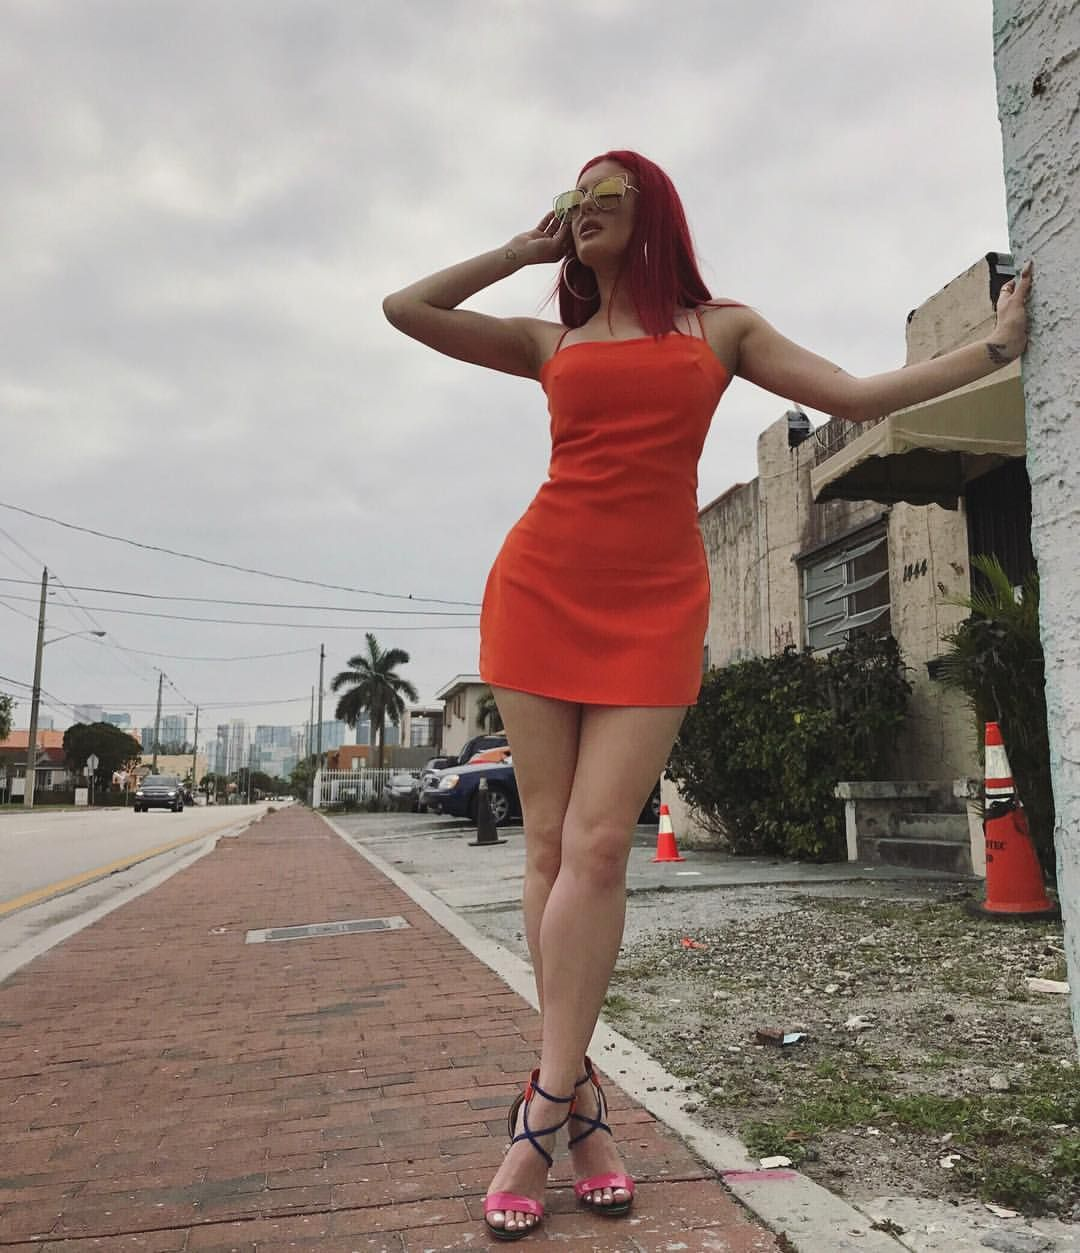 Cleavage Justina Valentine naked (28 photo), Ass, Hot, Boobs, cameltoe 2017